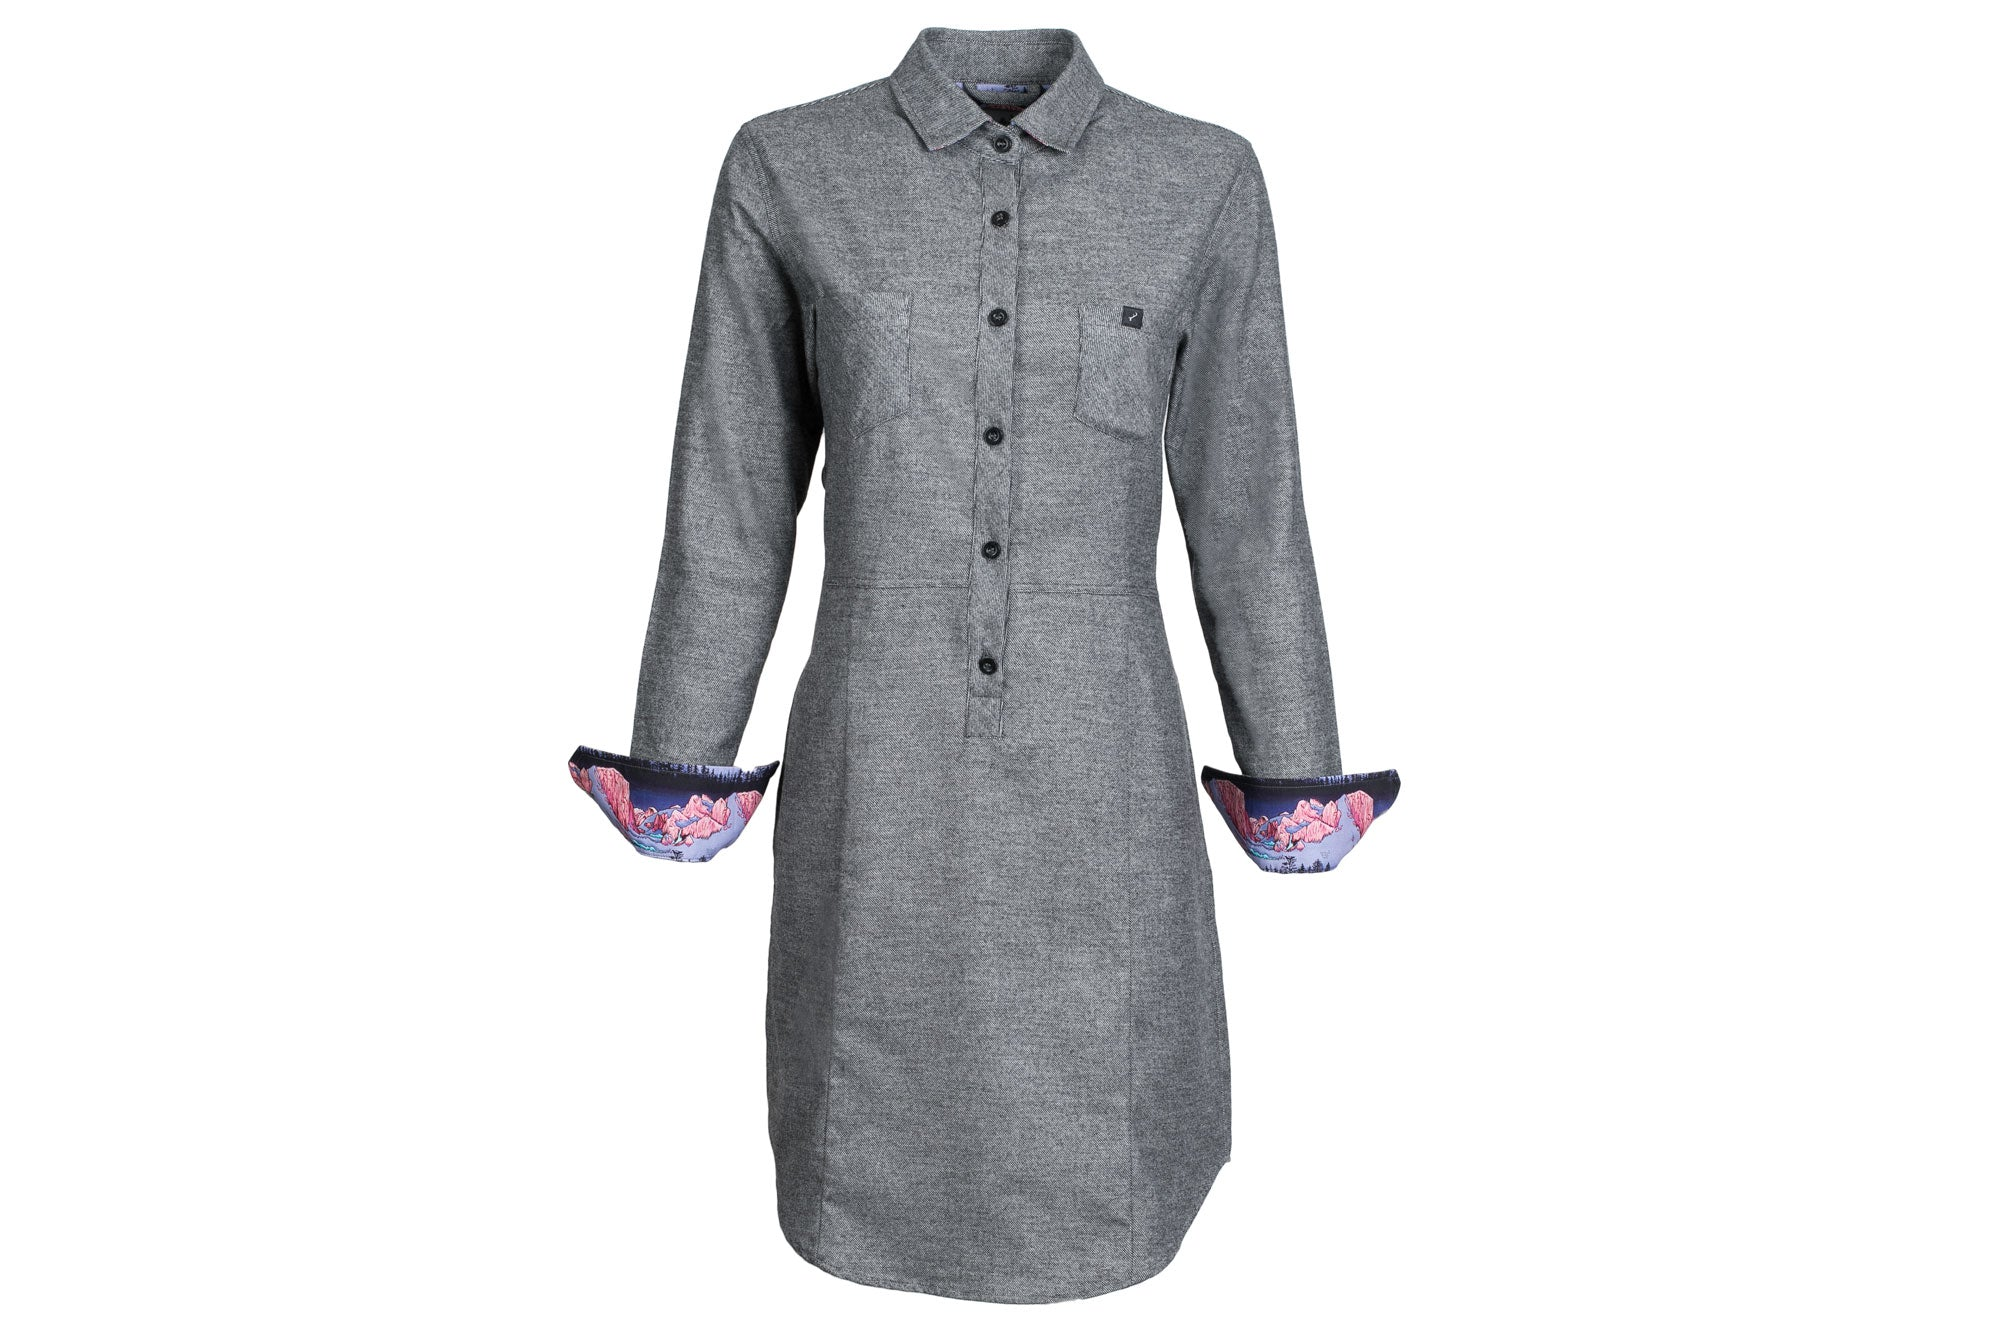 Women's Shirt Dress - RP Charcoal Heather Grey